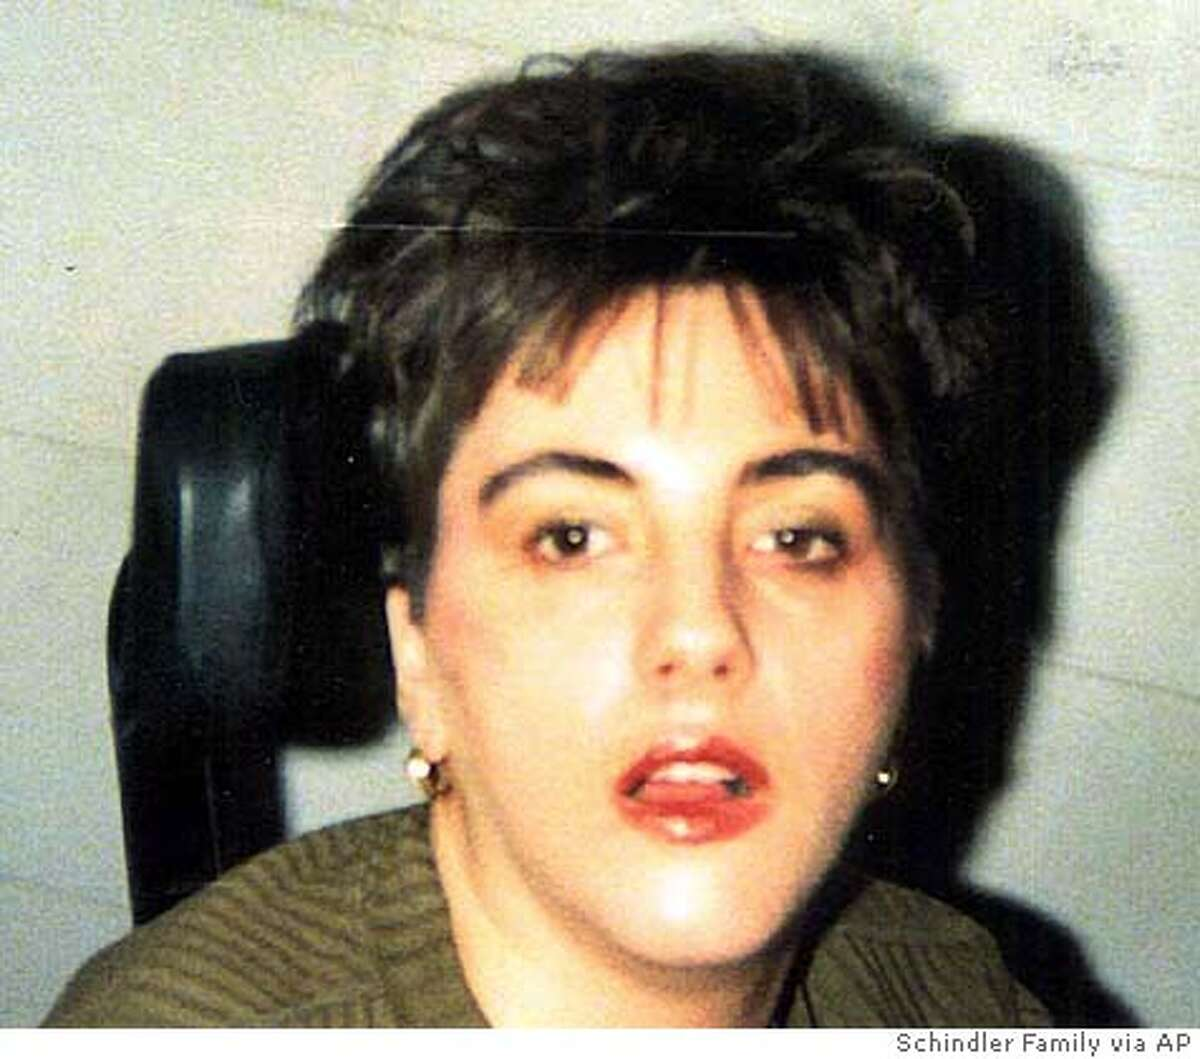 **FILE** Terri Schiavo is shown in this undated Schindler family photo taken shortly after she had a heart attack in 1990. The medical examiner's office plans to release its autopsy report Wednesday on Terri Schiavo _ findings her family hopes will shed light on the cause of the collapse that left her severely brain-damaged 15 years ago. Schiavo, 41, died March 31, nearly two weeks after the feeding tube that had kept her alive was removed under a court order obtained by her husband, Michael Schiavo. (AP Photo/Schindler Family Photo, File) ** **